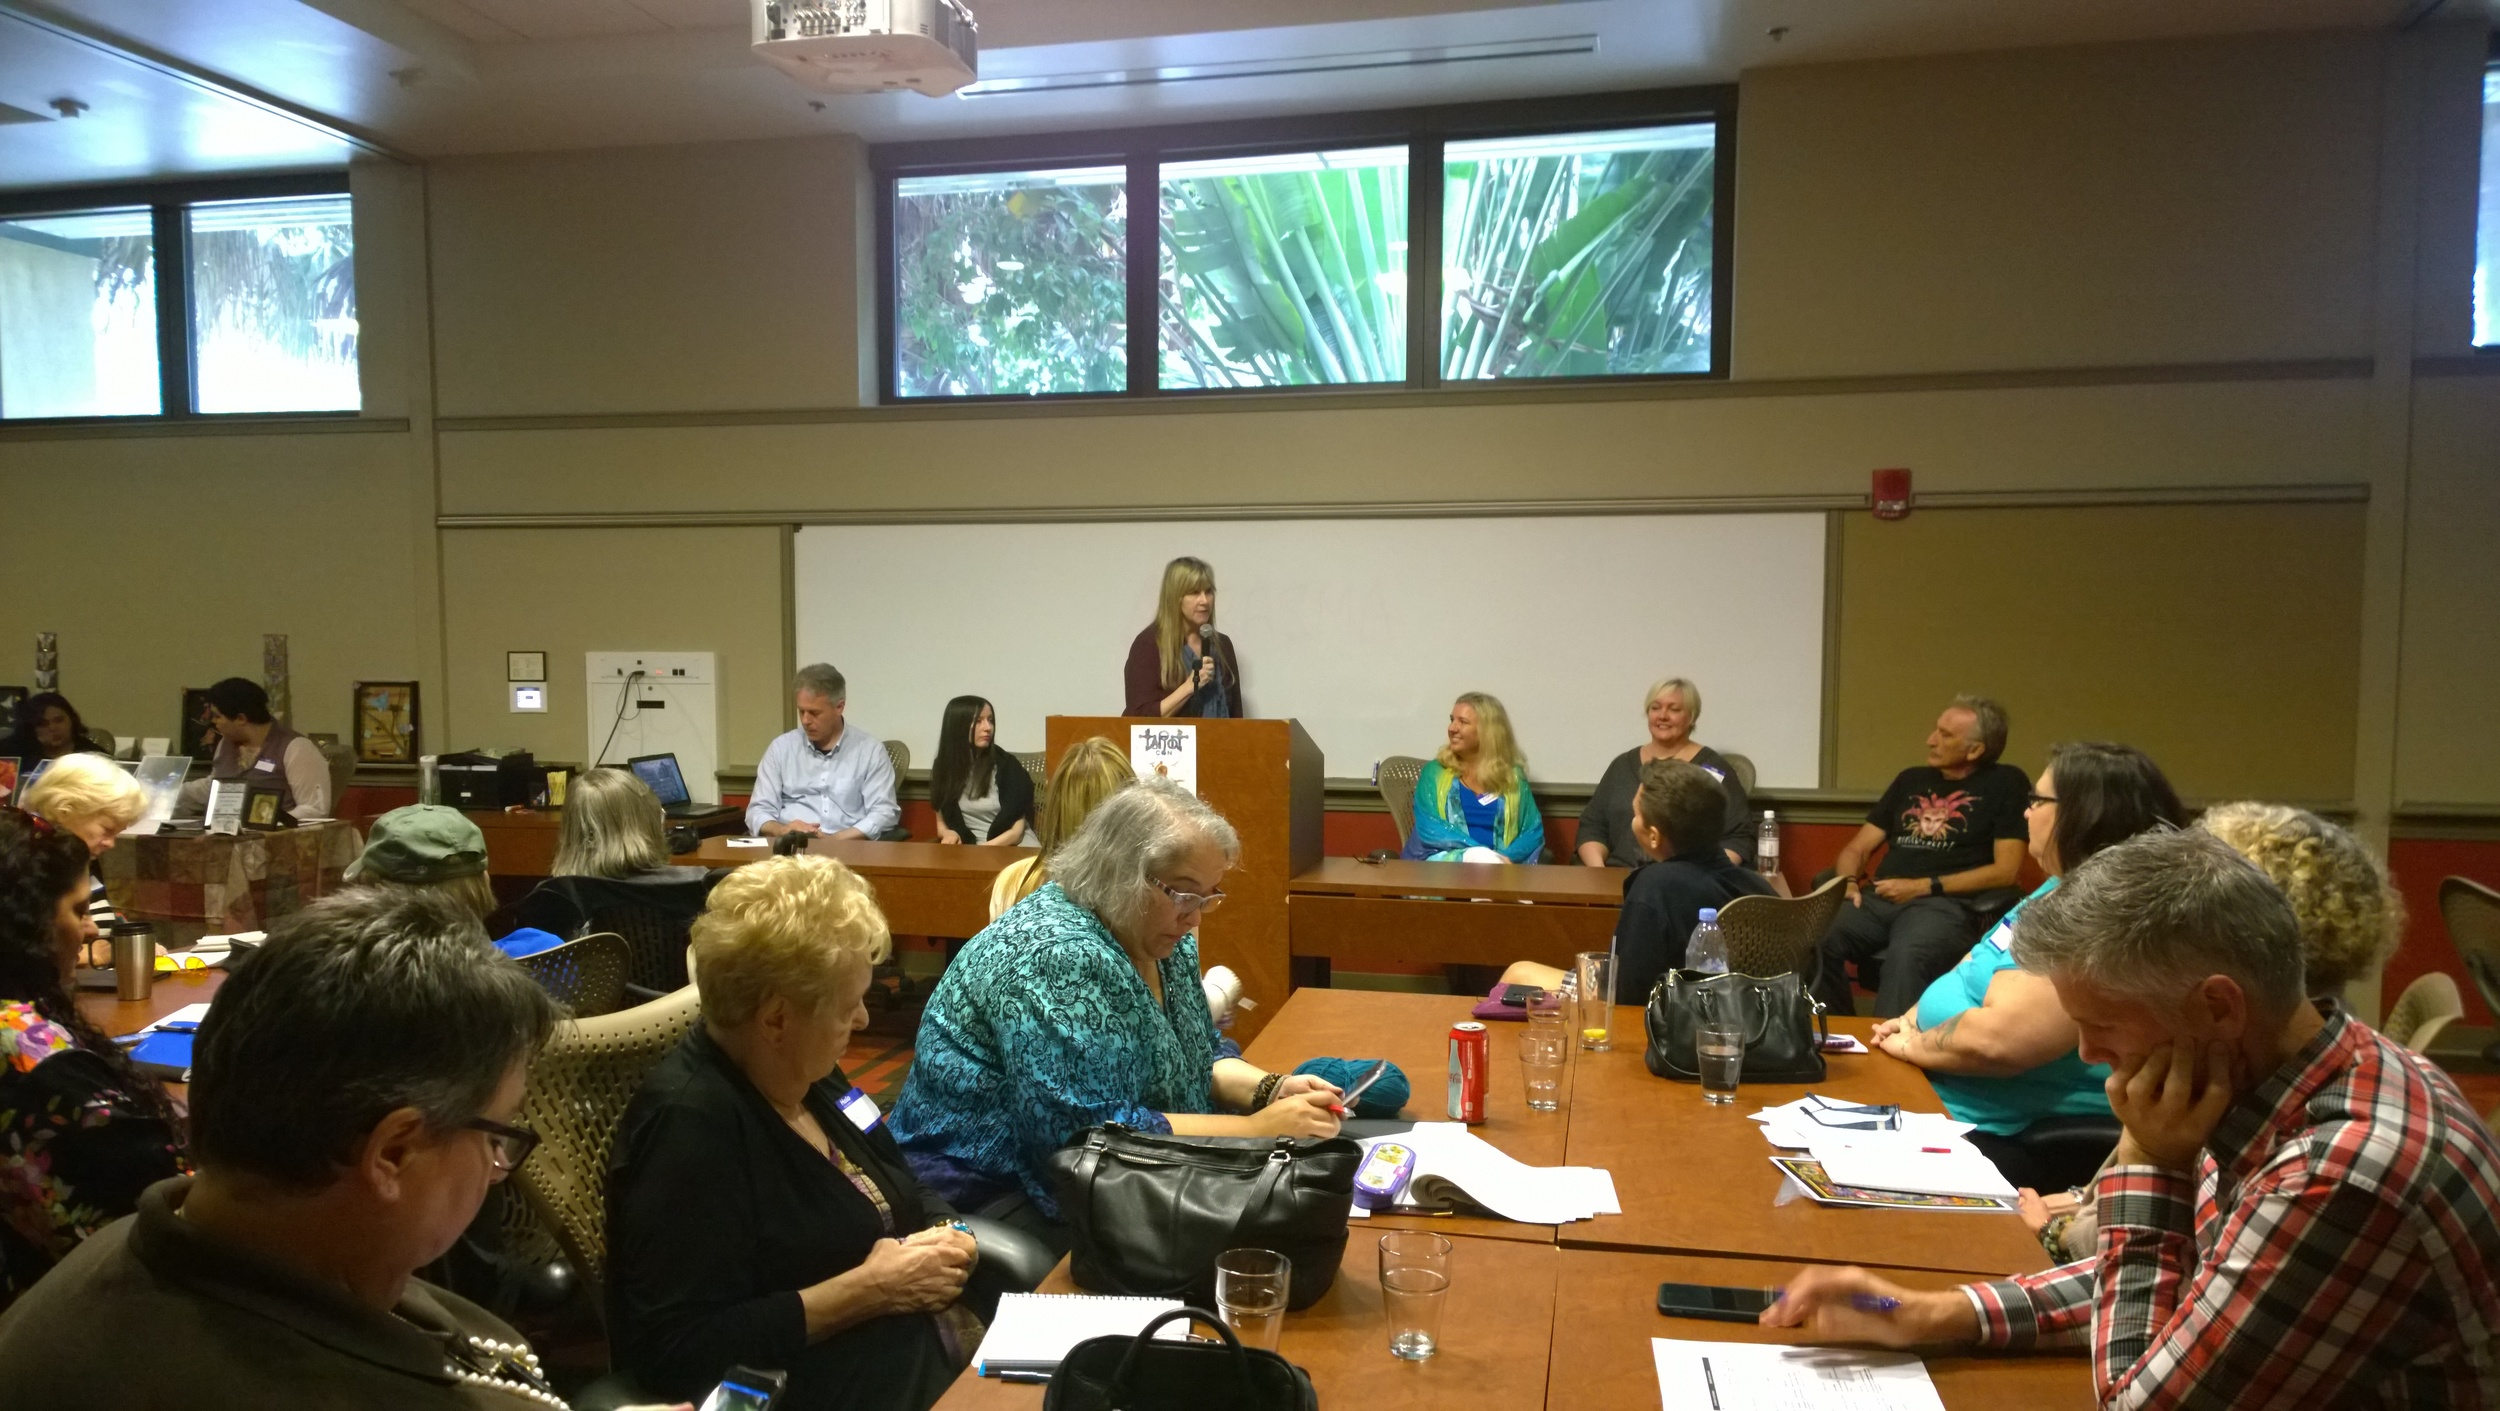 The Tarot Artists and Authors panel, moderated by Mary Ellen Collins.